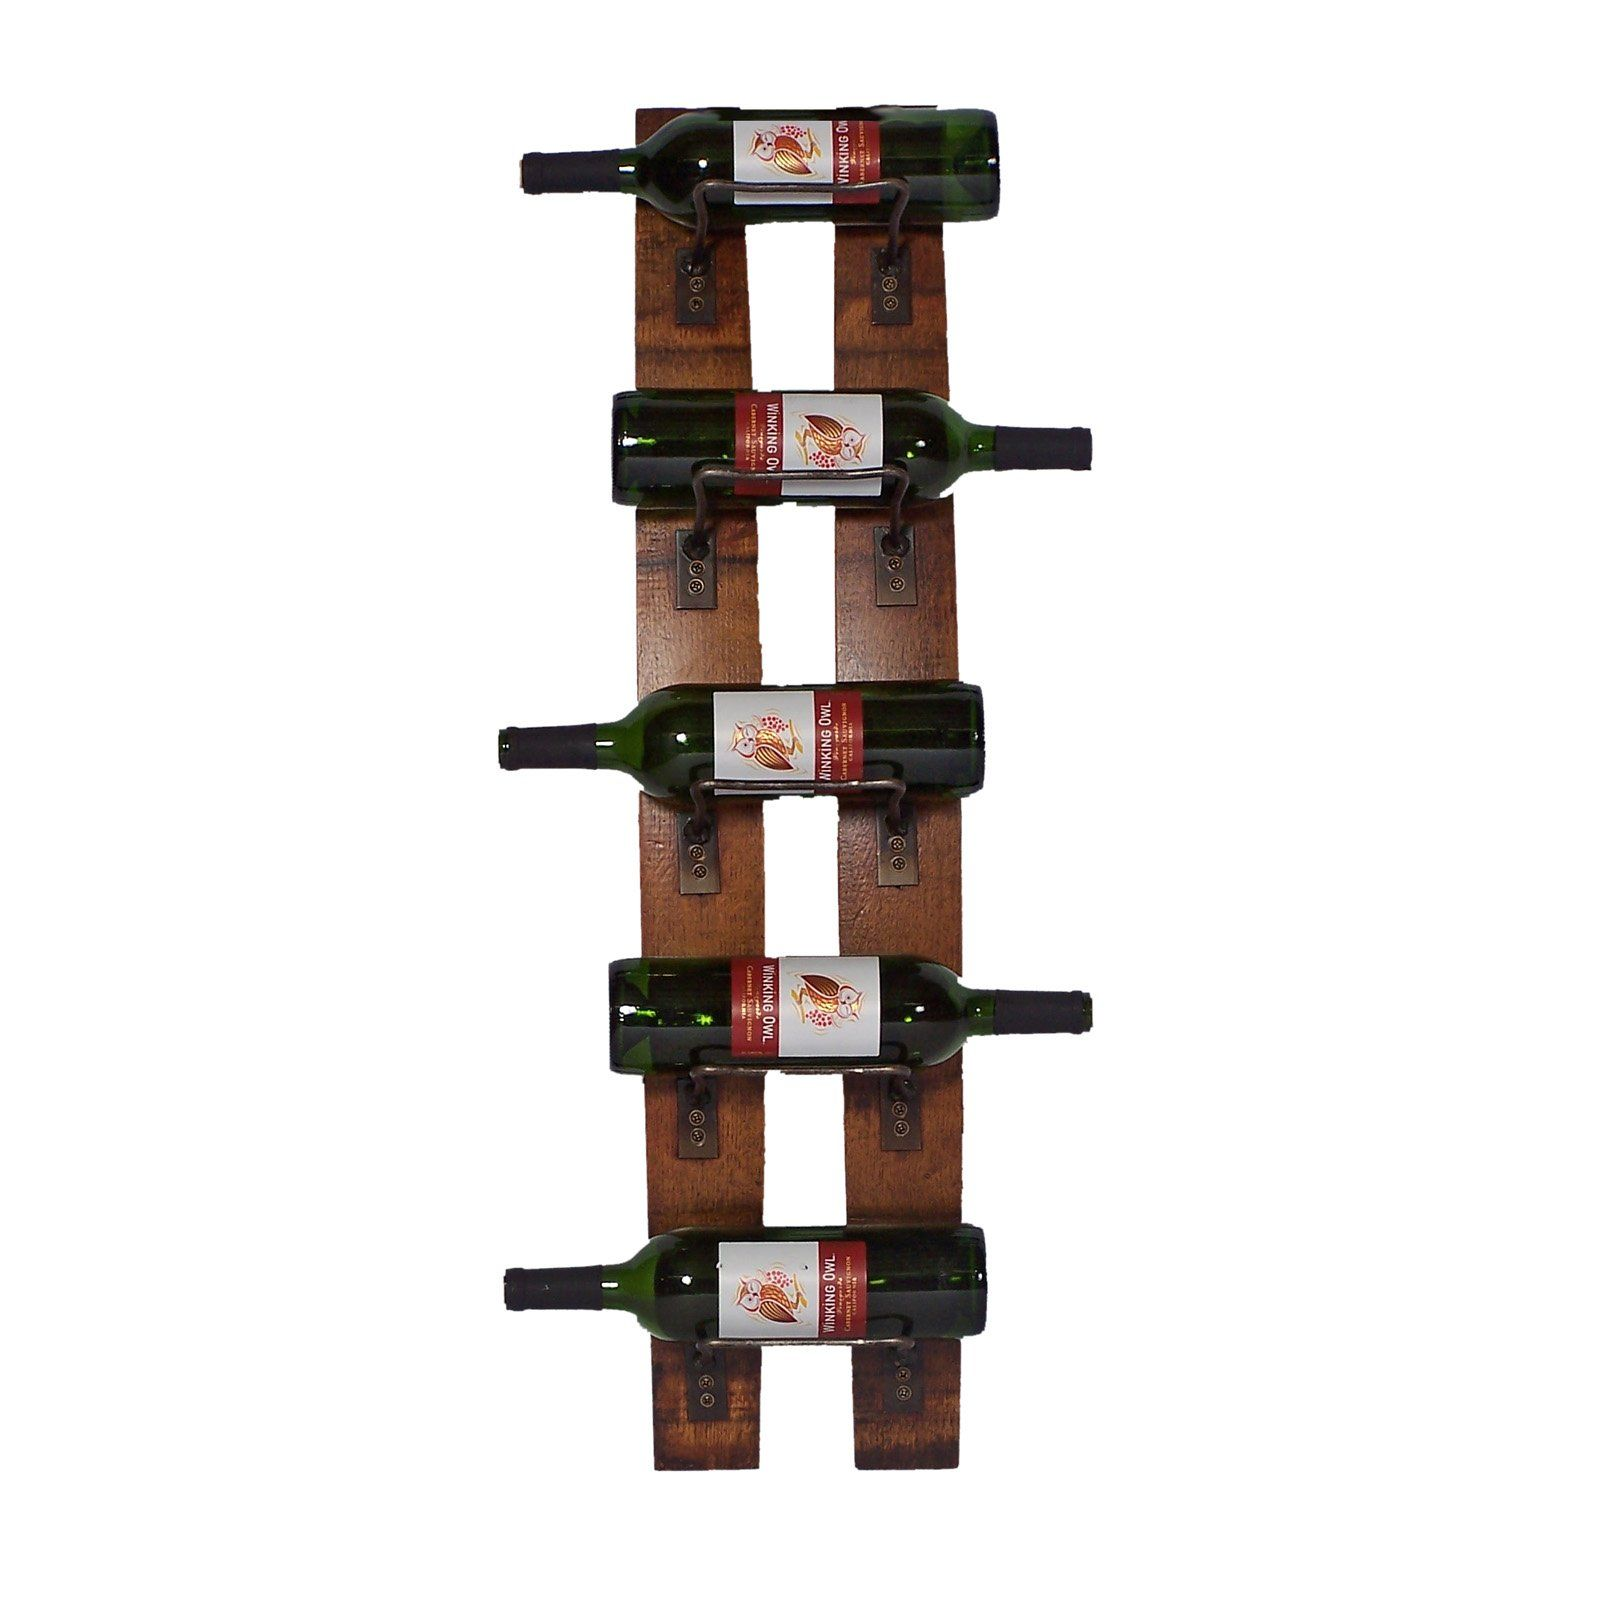 Hanging Bottle Rack Have To Have It 2 Day Designs Reclaimed 5 Bottle Wall